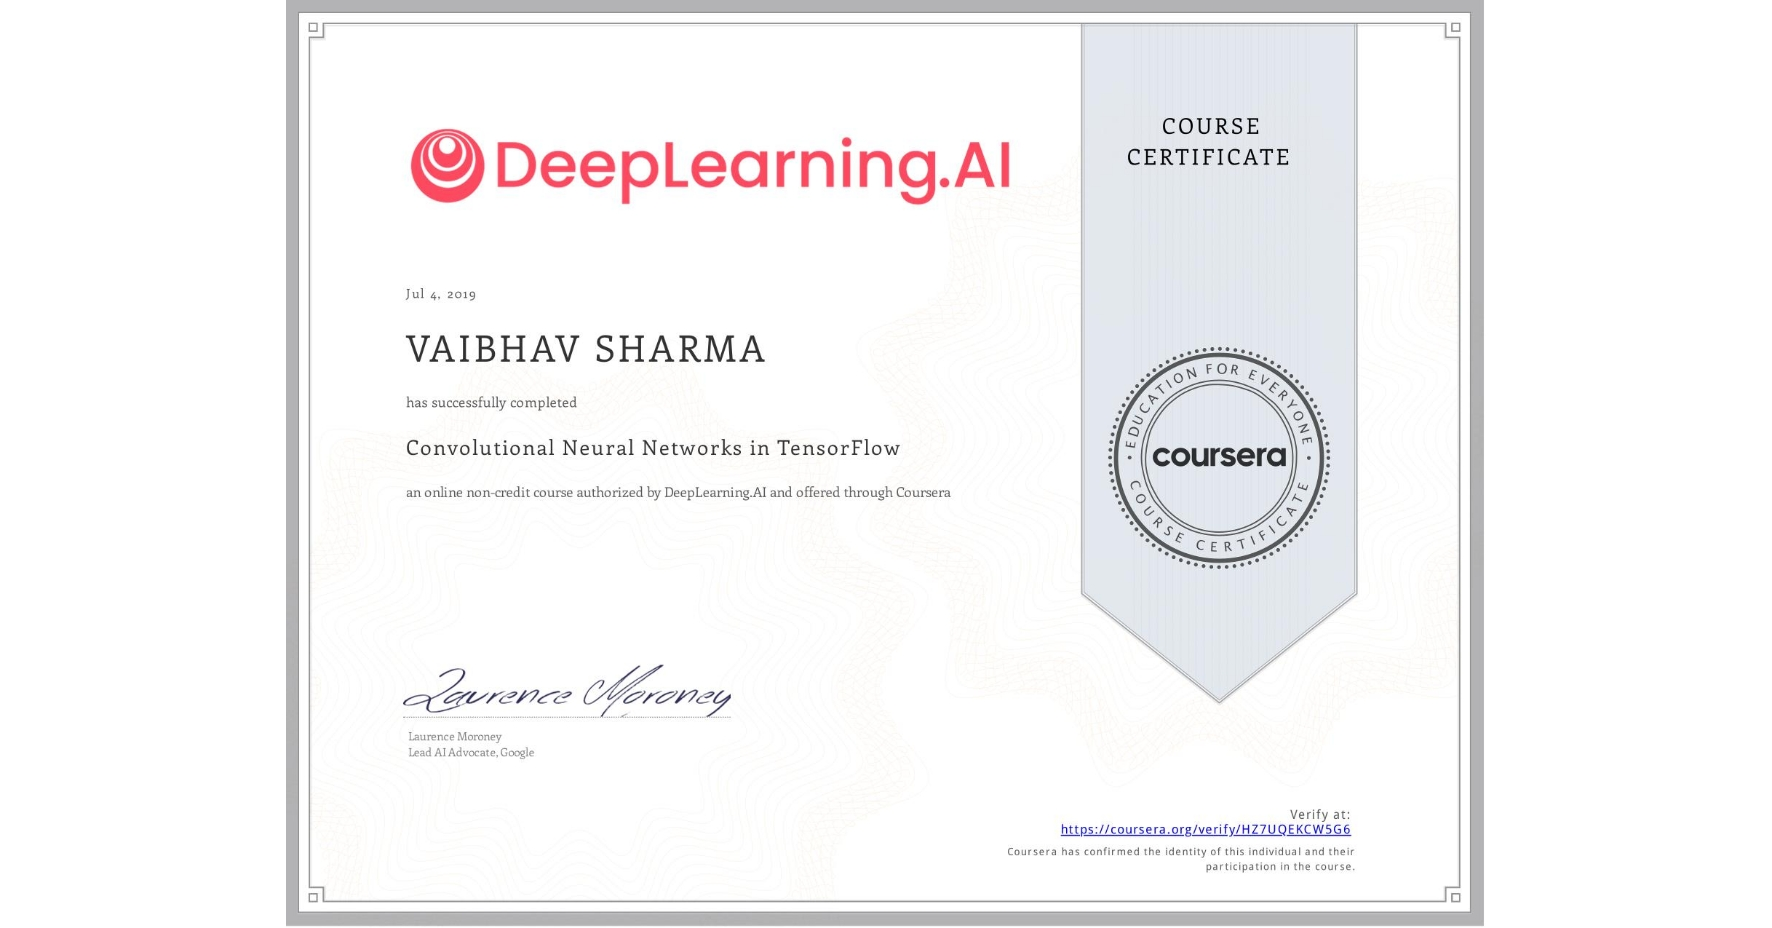 View certificate for VAIBHAV SHARMA, Convolutional Neural Networks in TensorFlow, an online non-credit course authorized by DeepLearning.AI and offered through Coursera